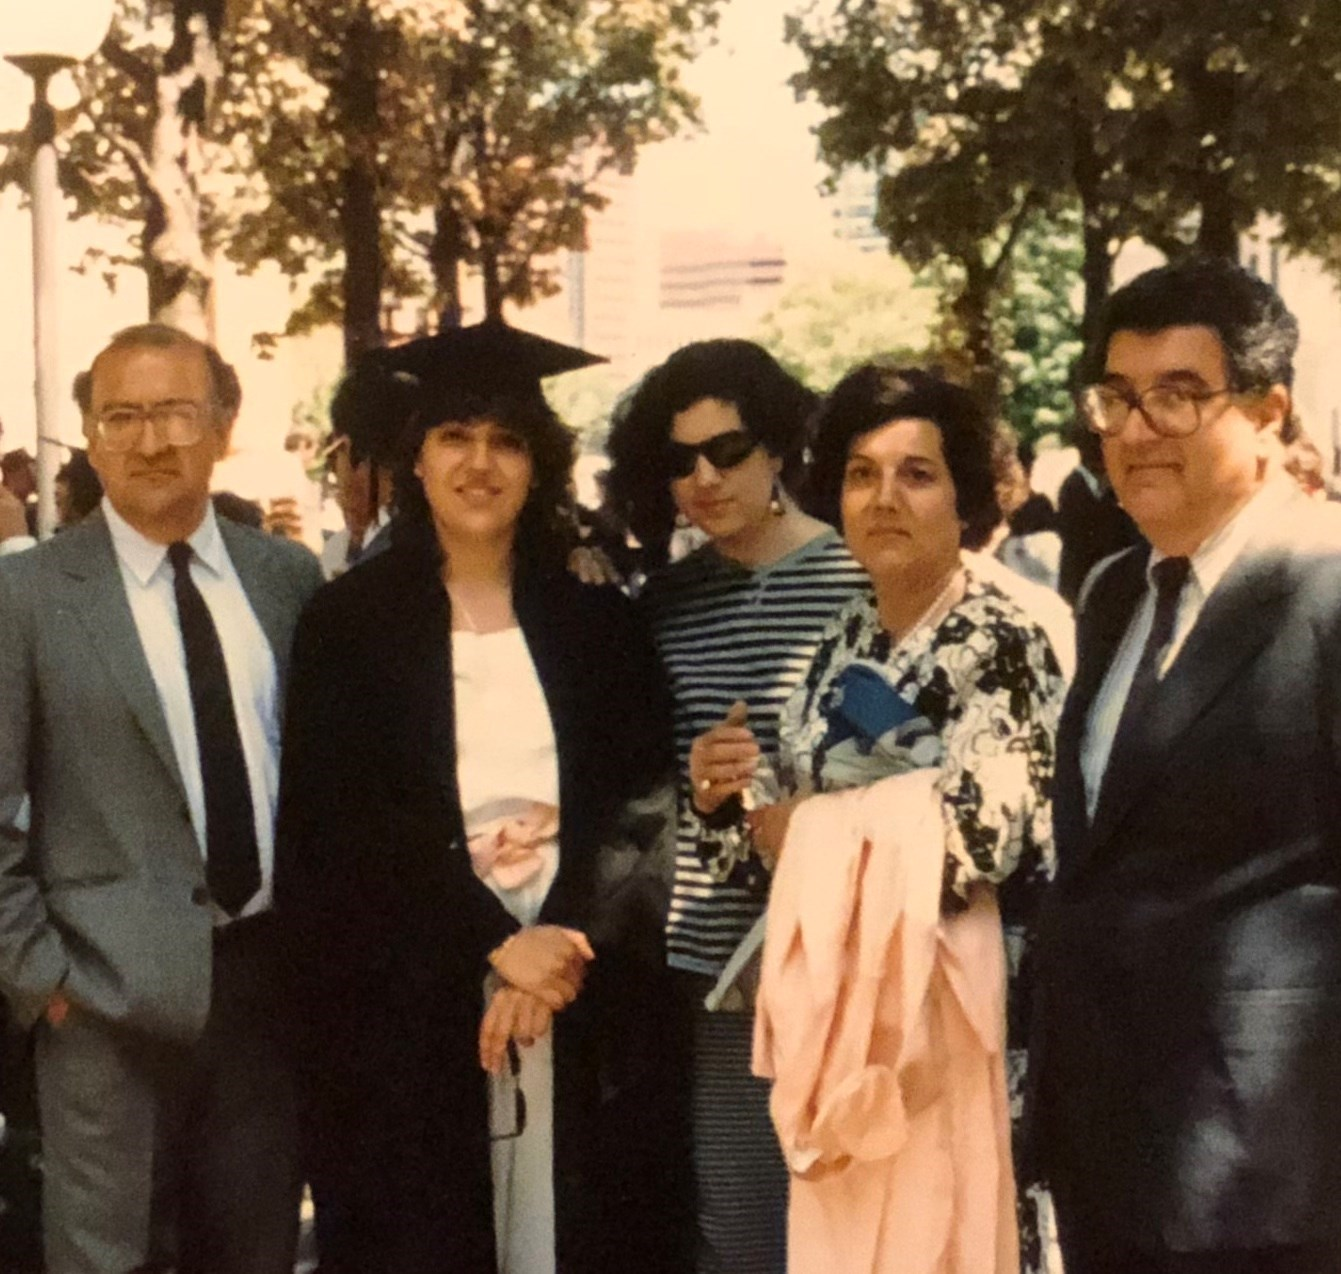 With family at Vici's graduation. Cambridge, Ma. 1988.